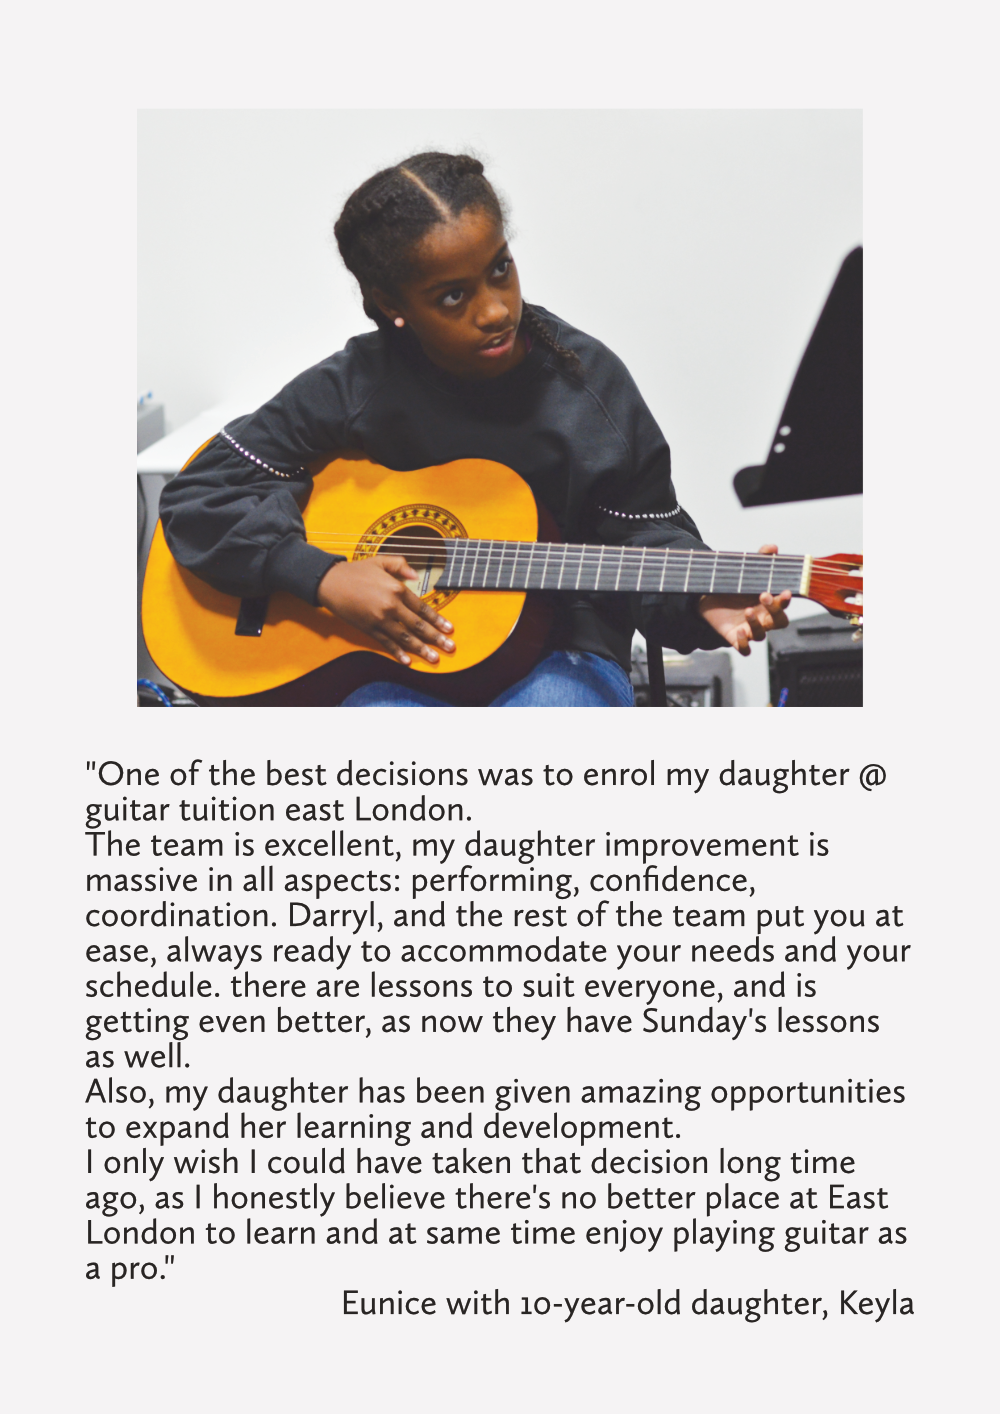 student guitar tuition east london kids guitar lessons testimonial review prices